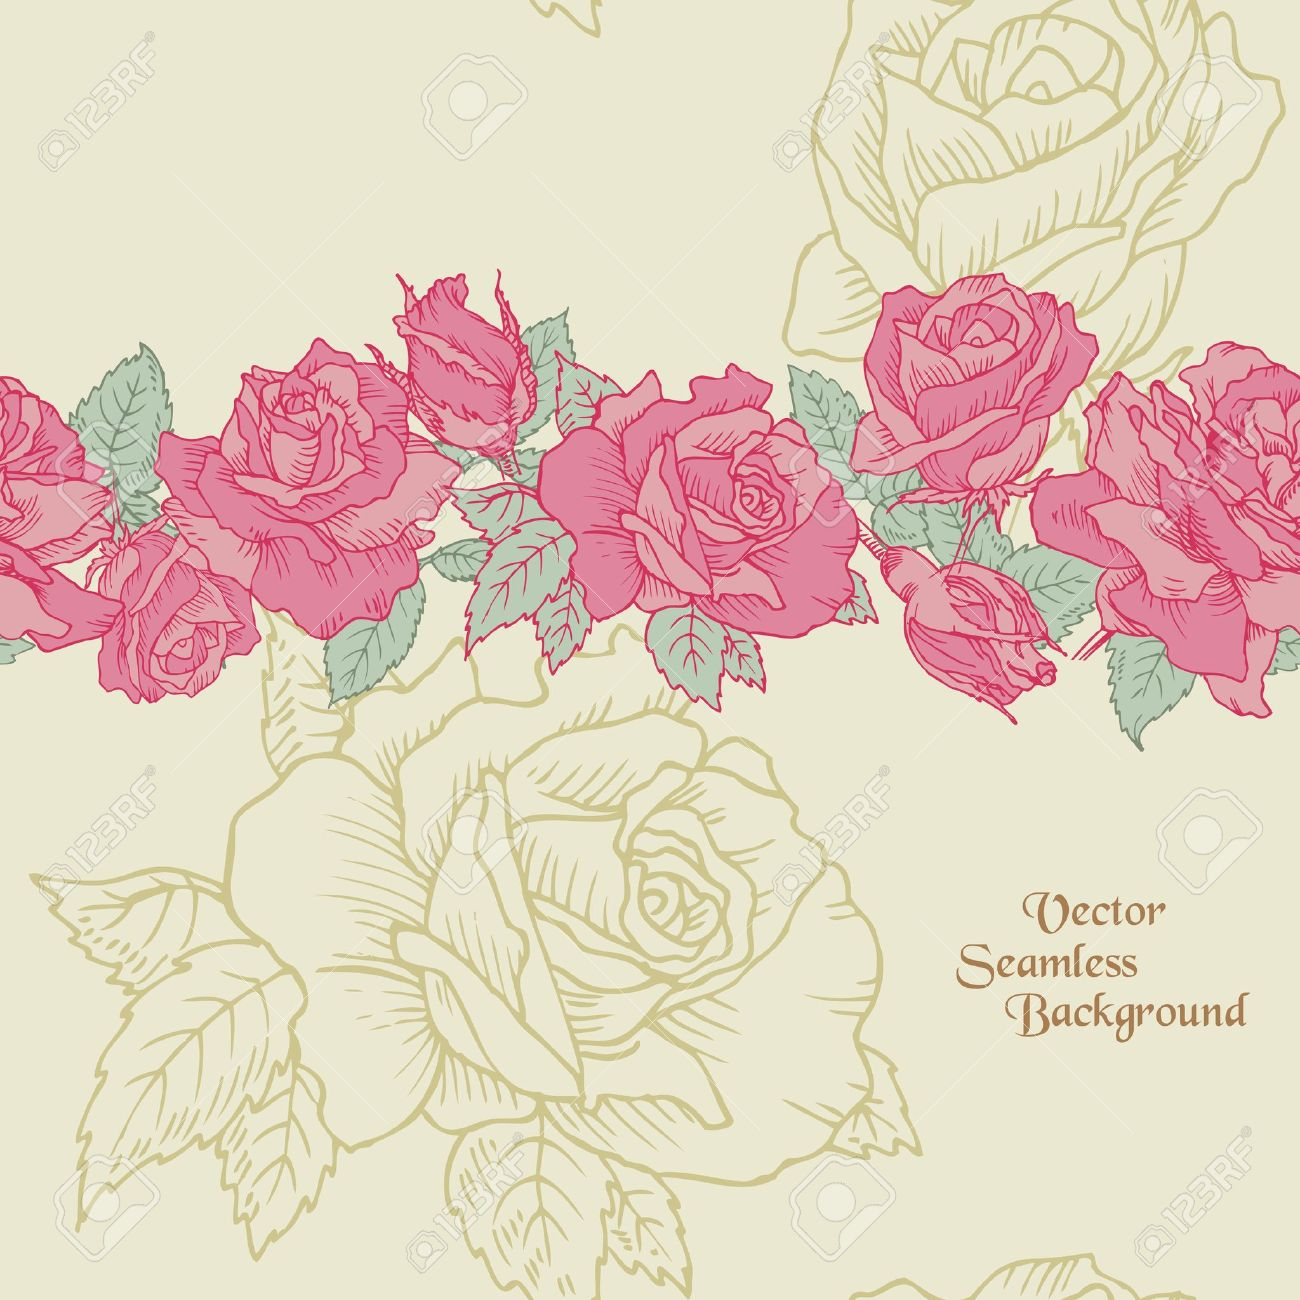 Seamless Flower Background - Hand Drawn Roses in vector Stock Vector - 13166211